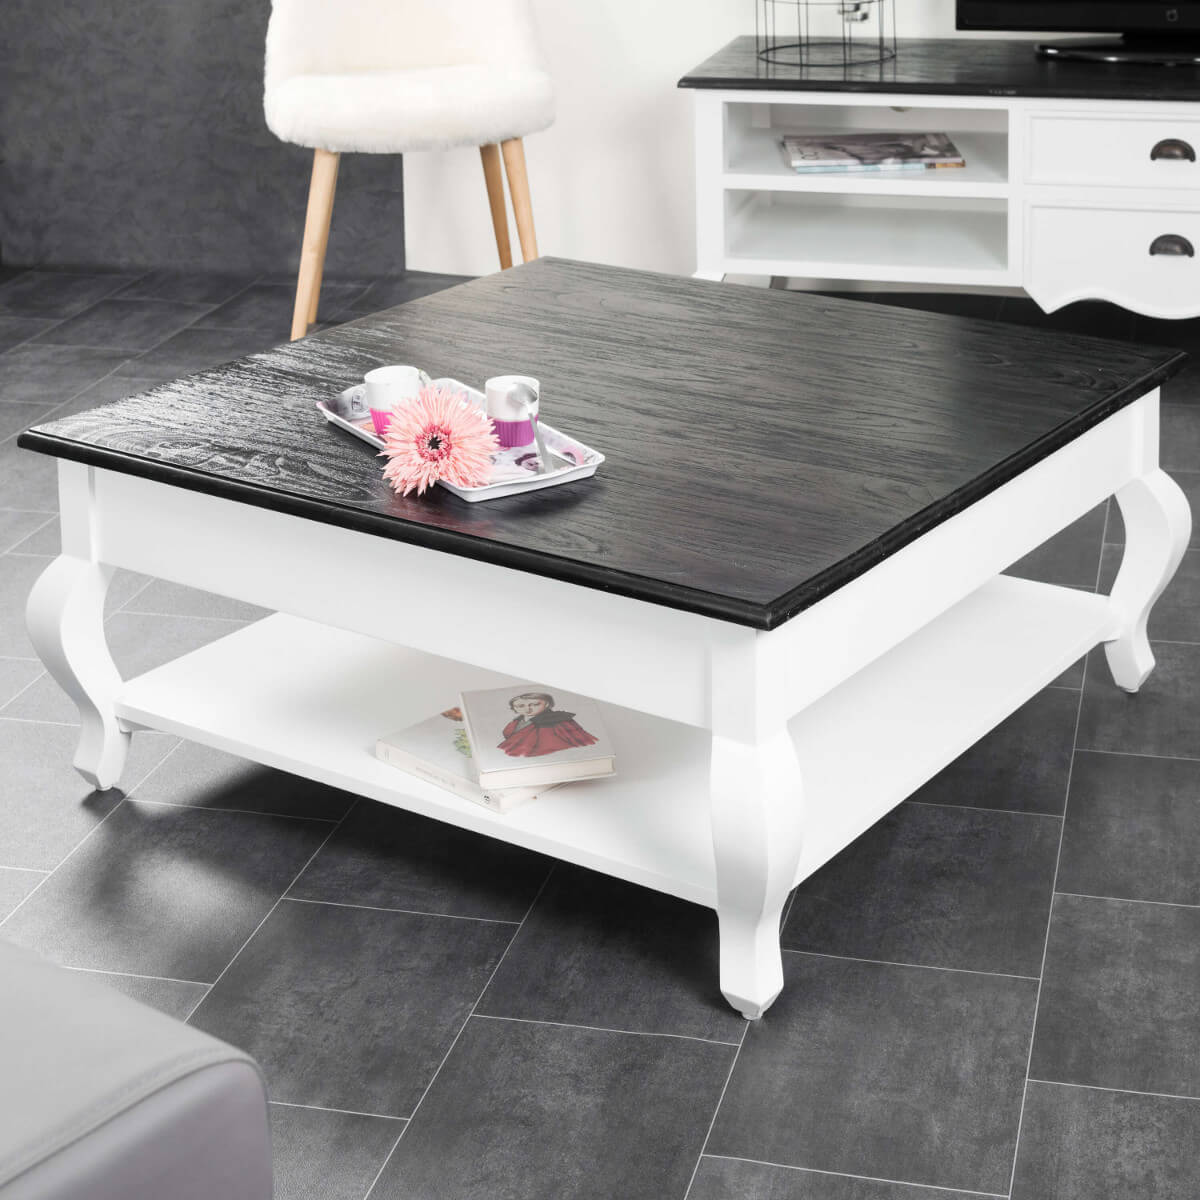 Table basse carr e meuble salon bois massif blanche noire idao 95 cm - Table basse salon carree ...